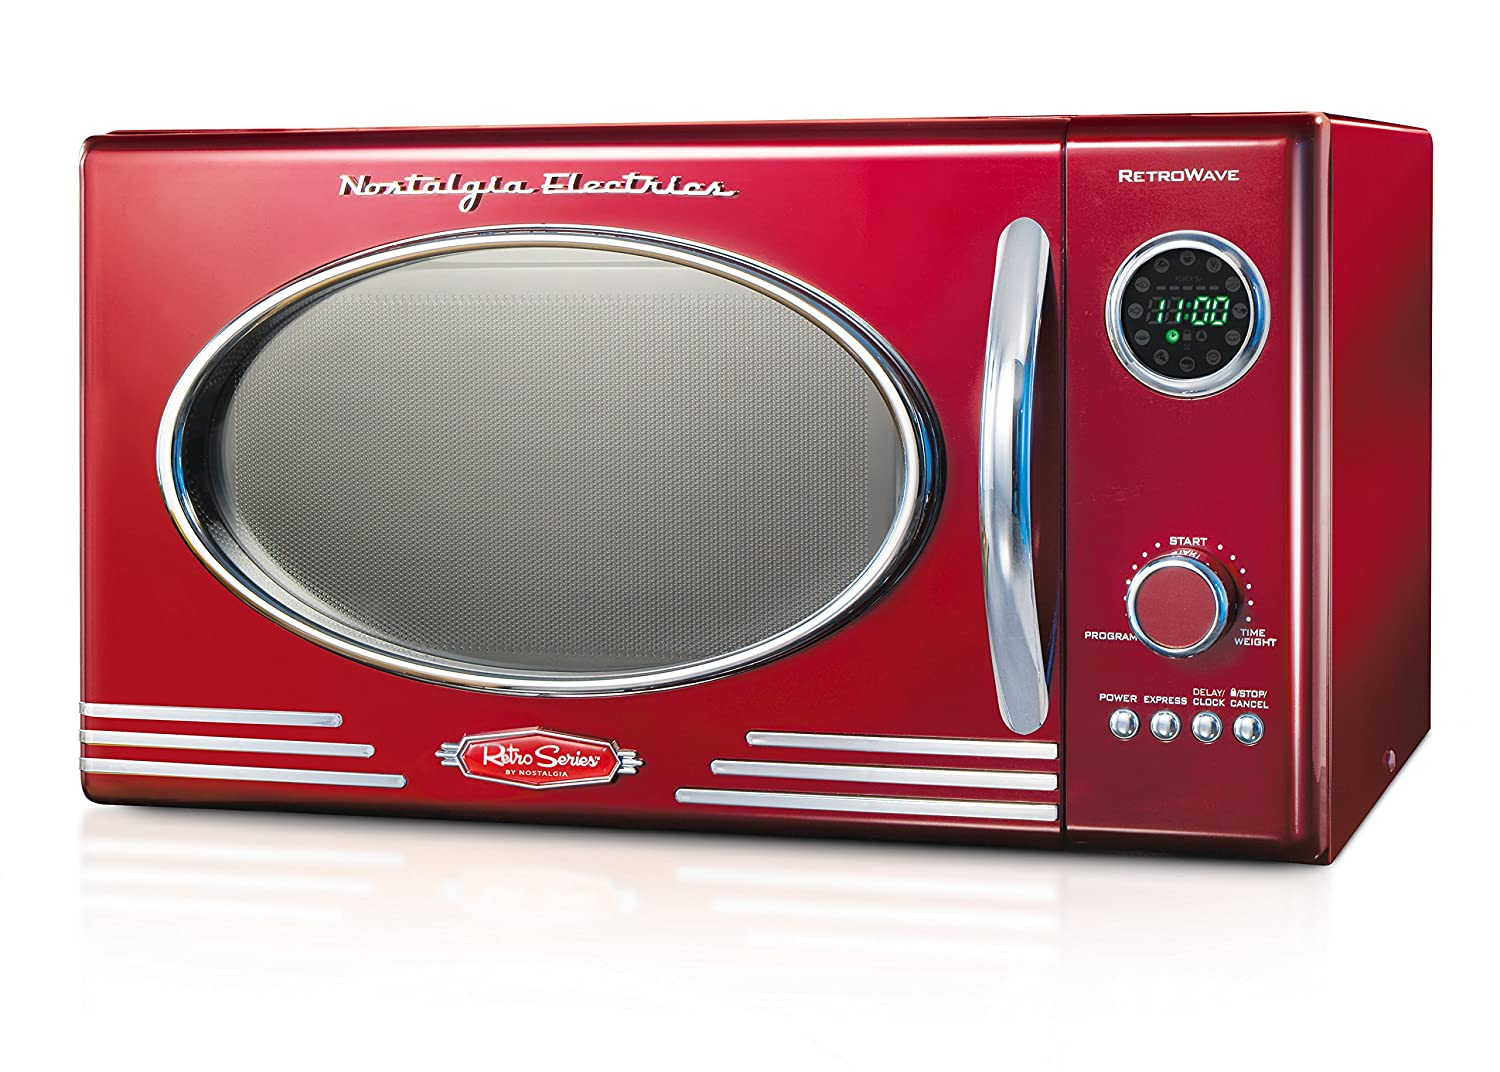 Nostalgia RMO400RED Retro 0.9 Cubic Foot 800-Watt Countertop Microwave Oven - Retro Red